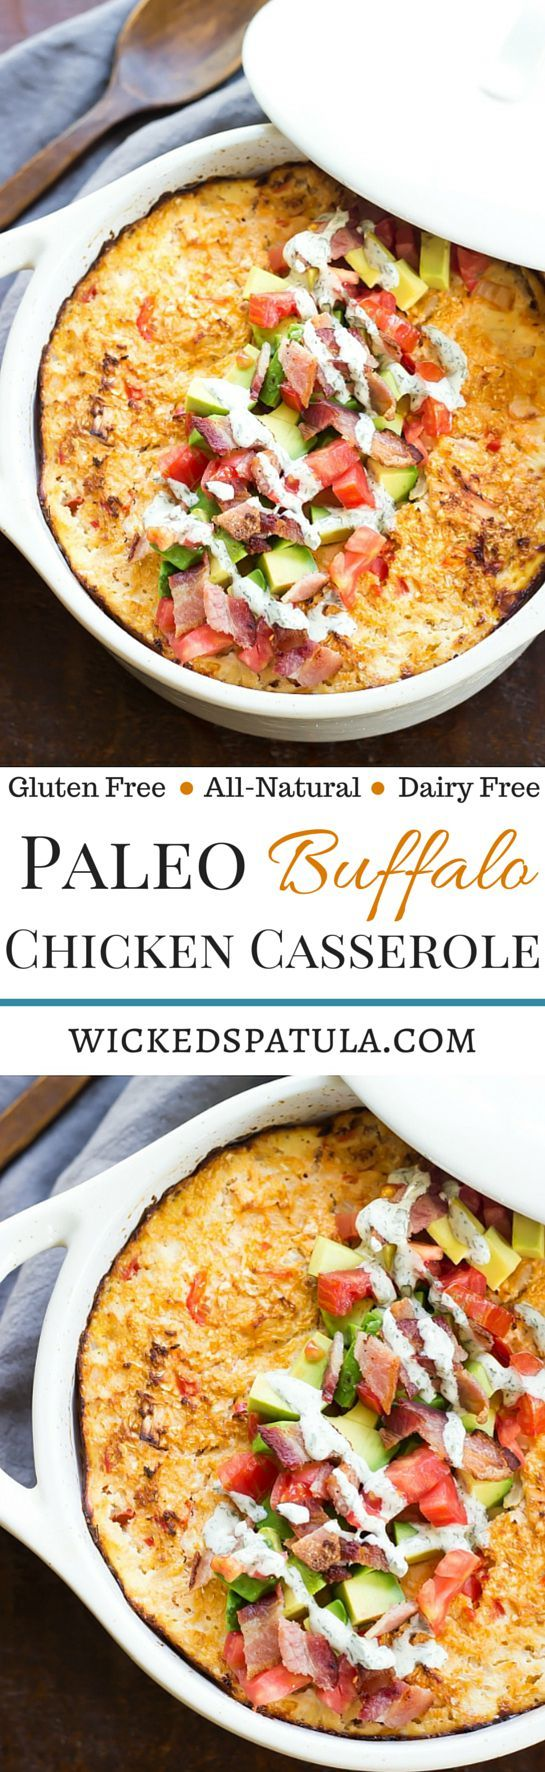 Paleo Buffalo Chicken Casserole - An easy weeknight healthy dinner! Who ever thought a low-carb casserole didn't exist?!   wickedspatula.com